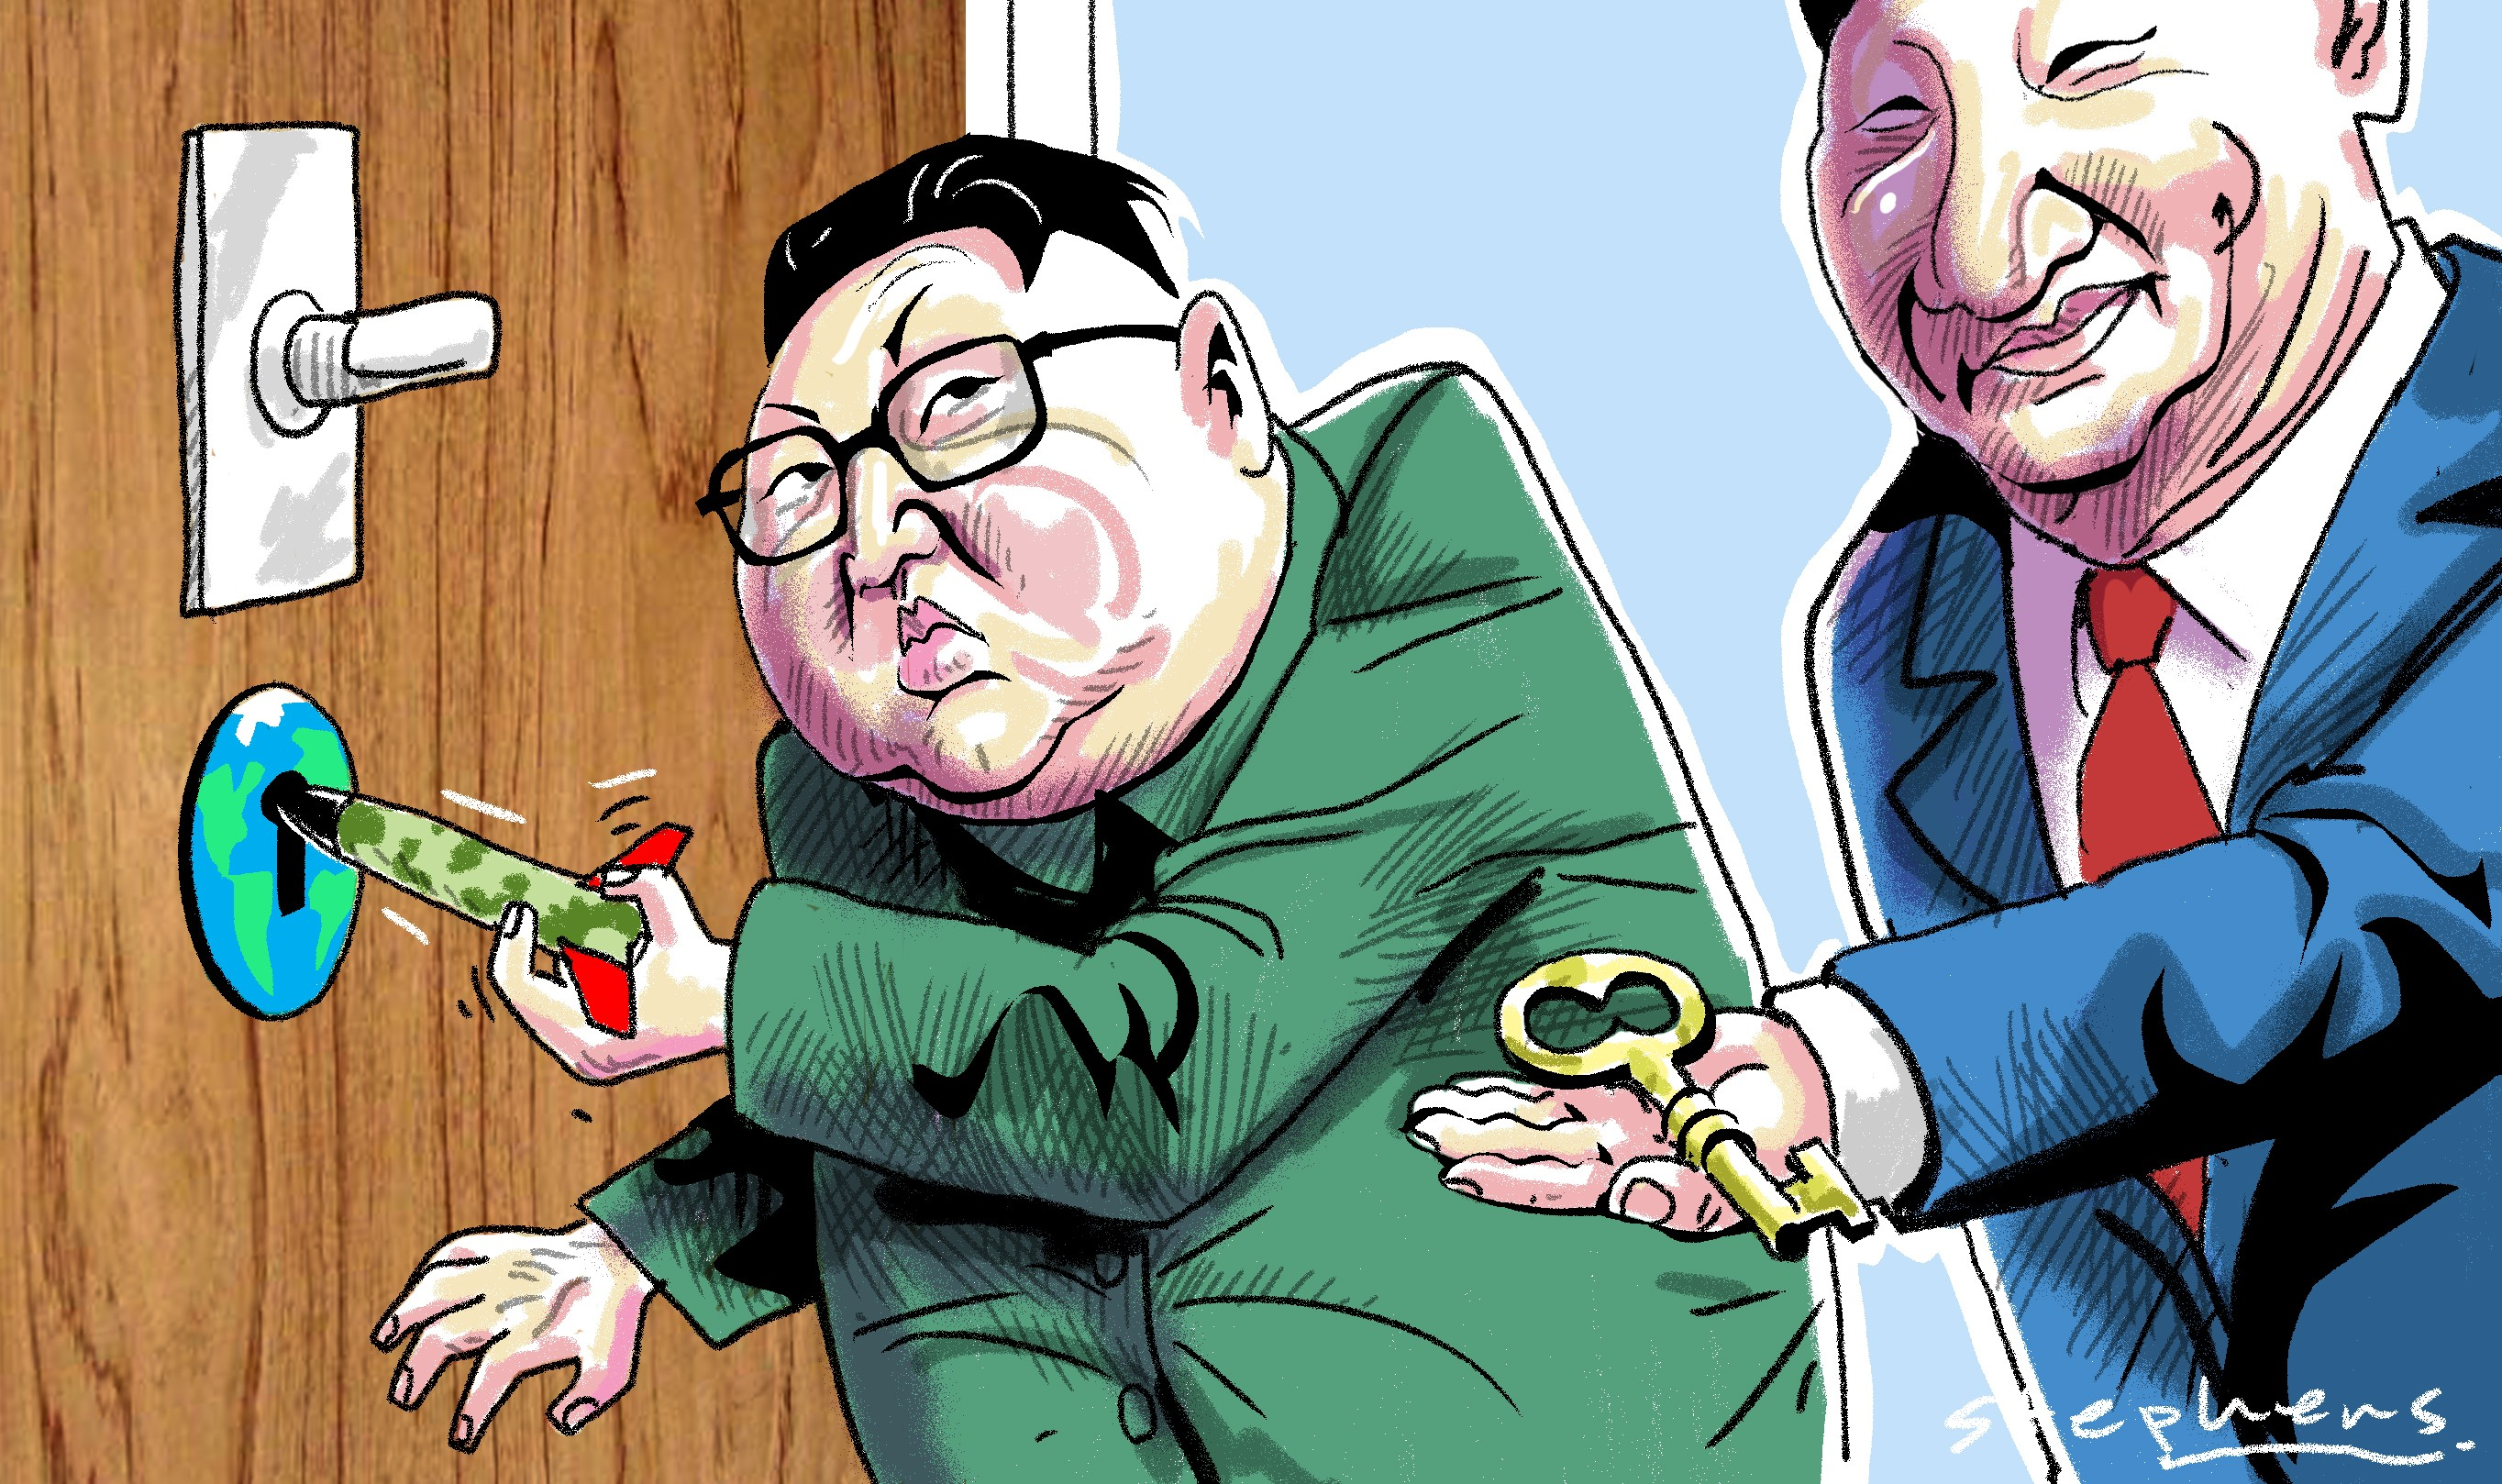 Only Xi Jinping can help Kim Jong-un unlock a bright